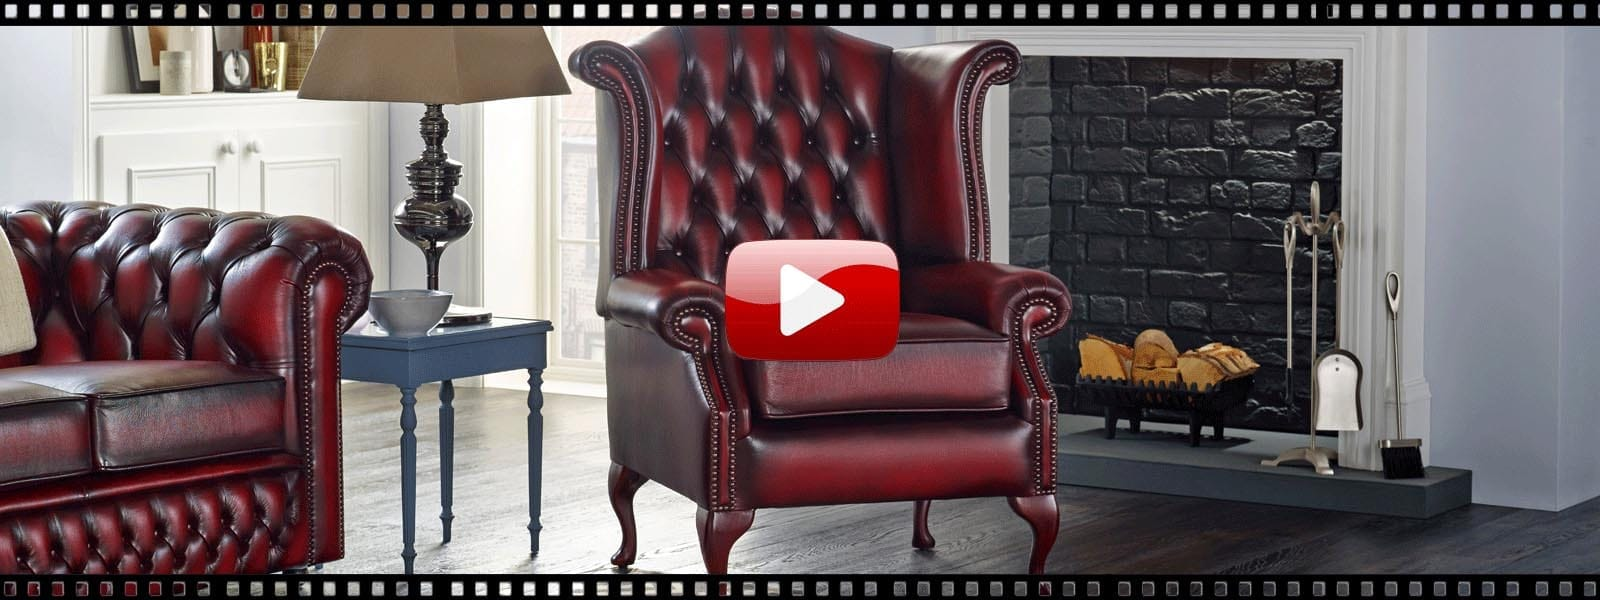 Seater queen anne high back wing sofa uk manufactured antique green - Watch Our Video